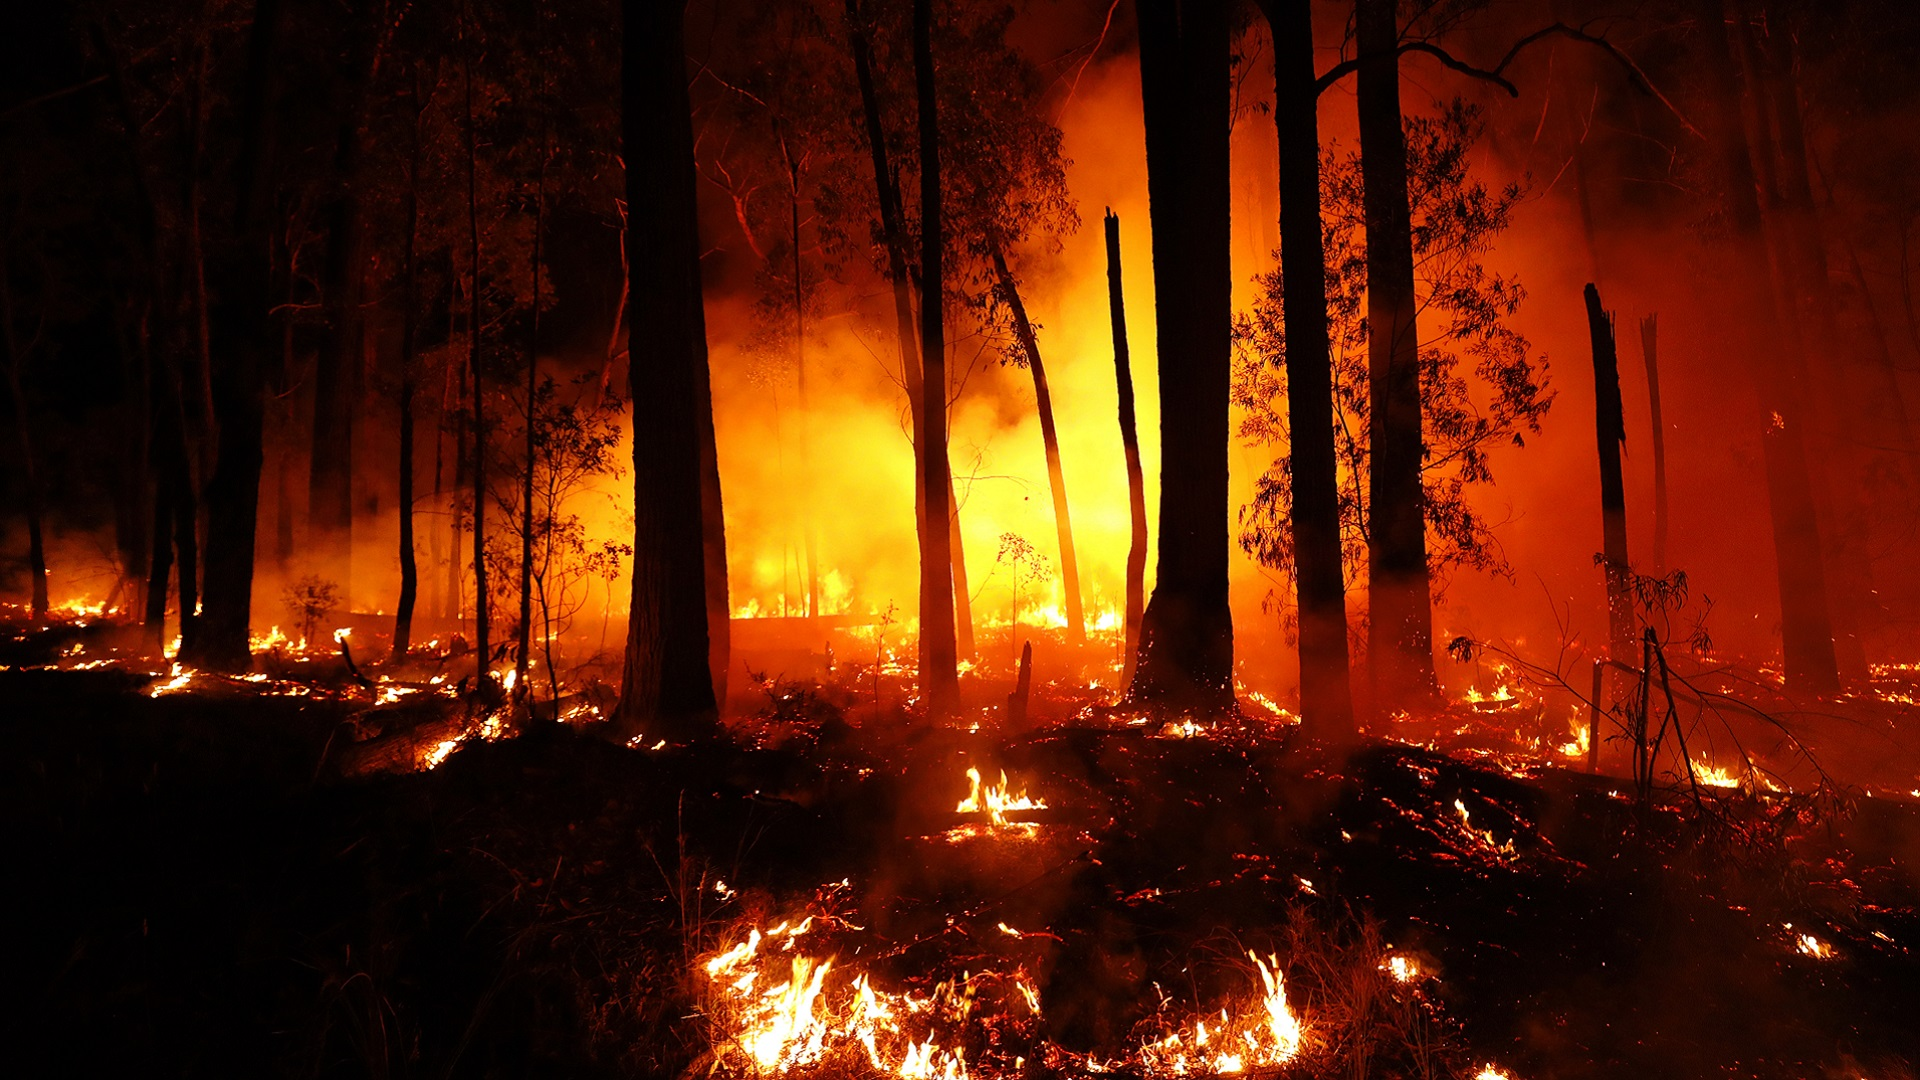 Bushfires are increasing in size and frequency